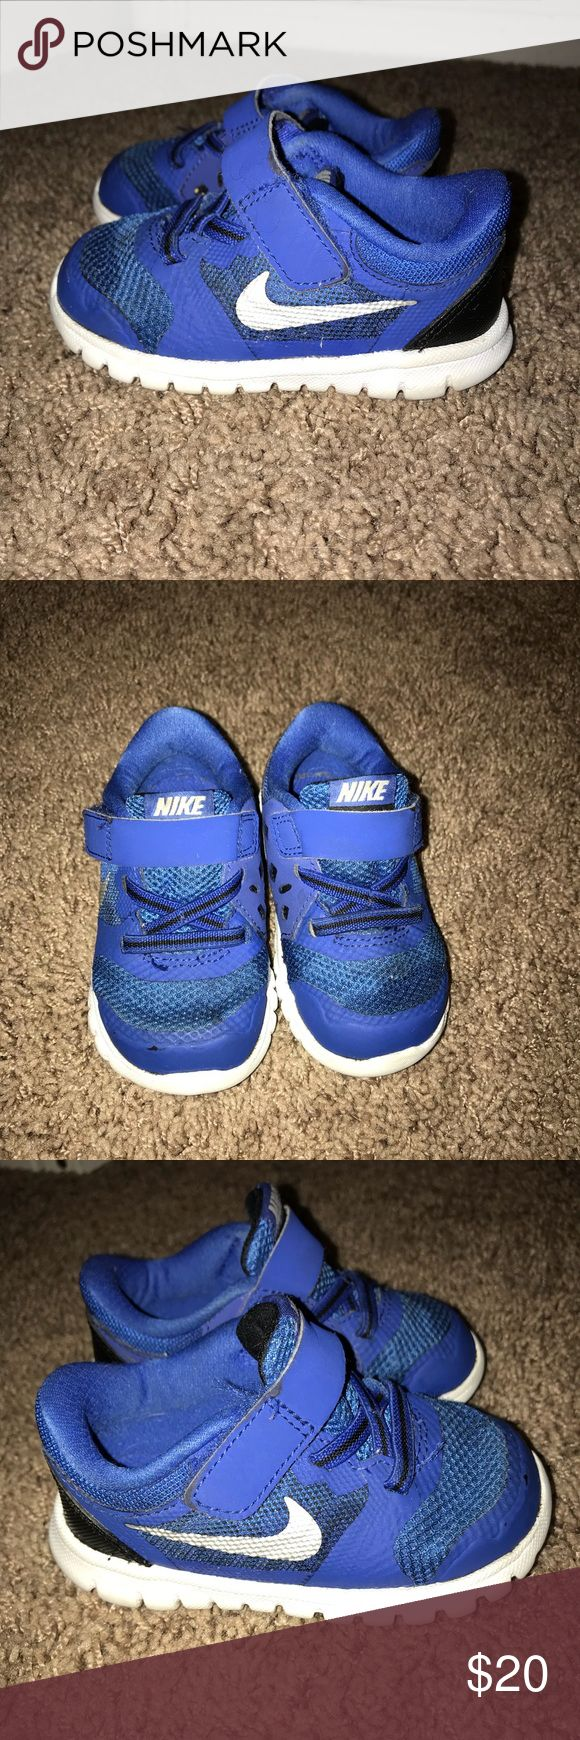 Toddler baby boy Nike's Velcro has some lint stuck in it (obviously can't tell when strap is closed), but no other flaws! Size 5c. My 1 year old wore these for a month or so before he could really walk. Smoke free home 😊 Nike Shoes Sneakers